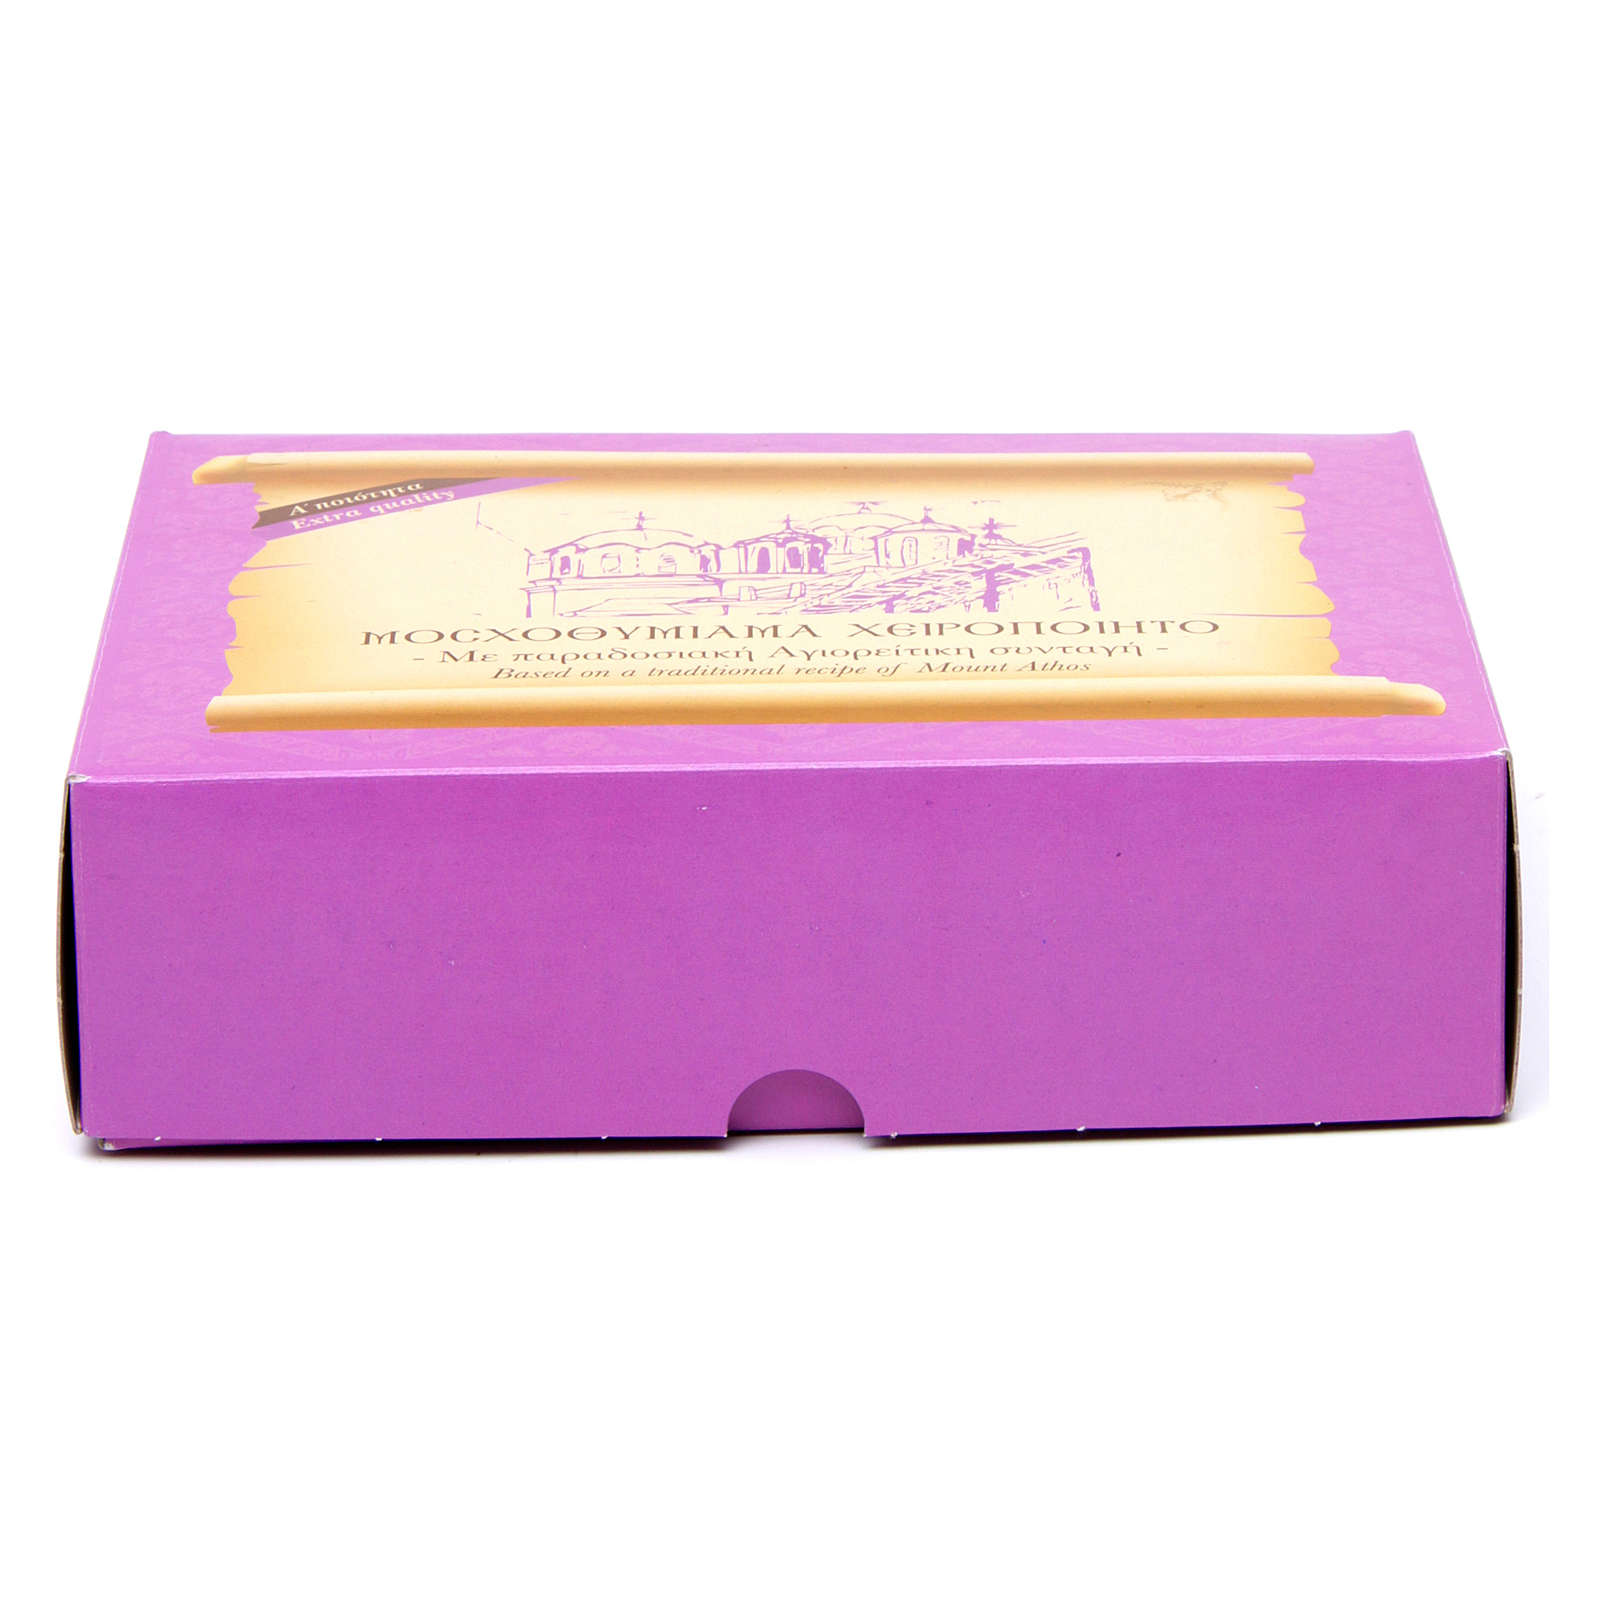 Marjoram-scented Greek incense 1 kg 3